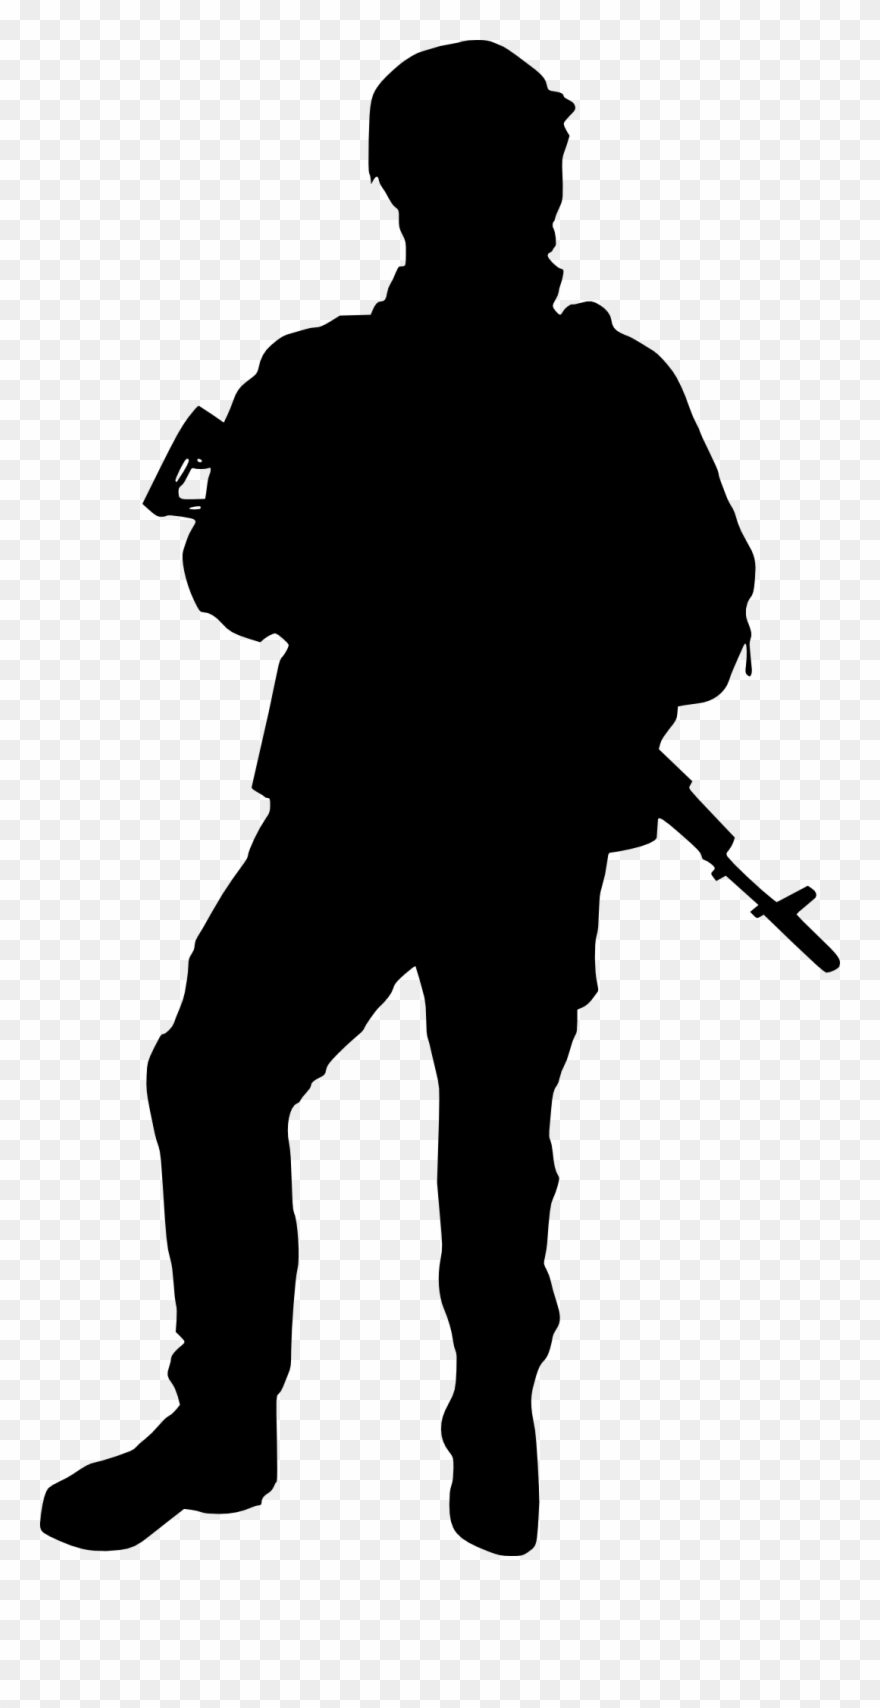 Soldiers Clip Art At Getdrawings Com Free - Soldier Silhouette No